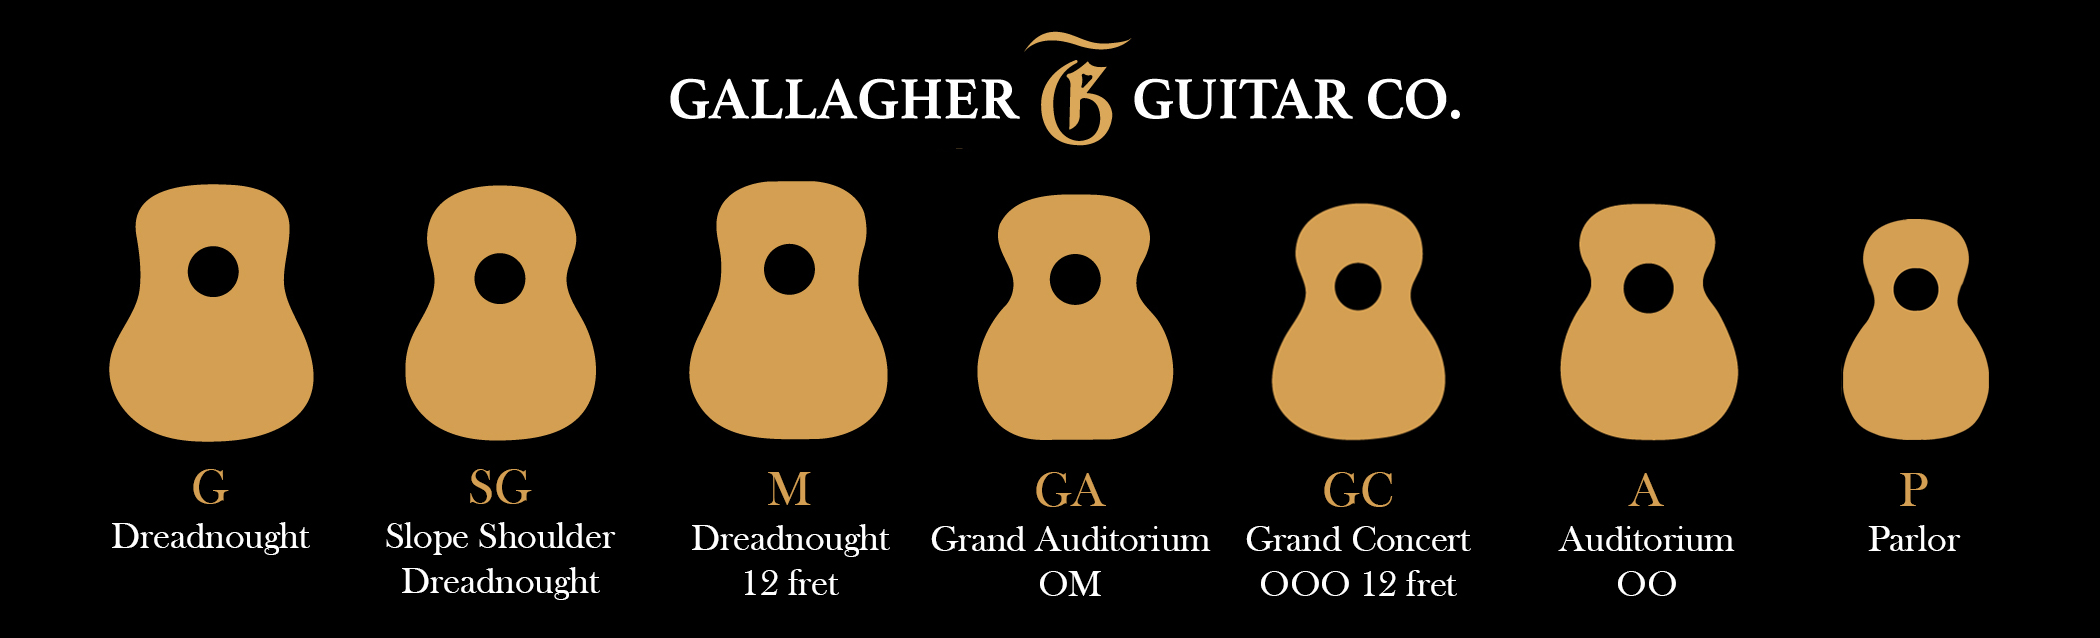 Gallagher Guitar Body Shapes